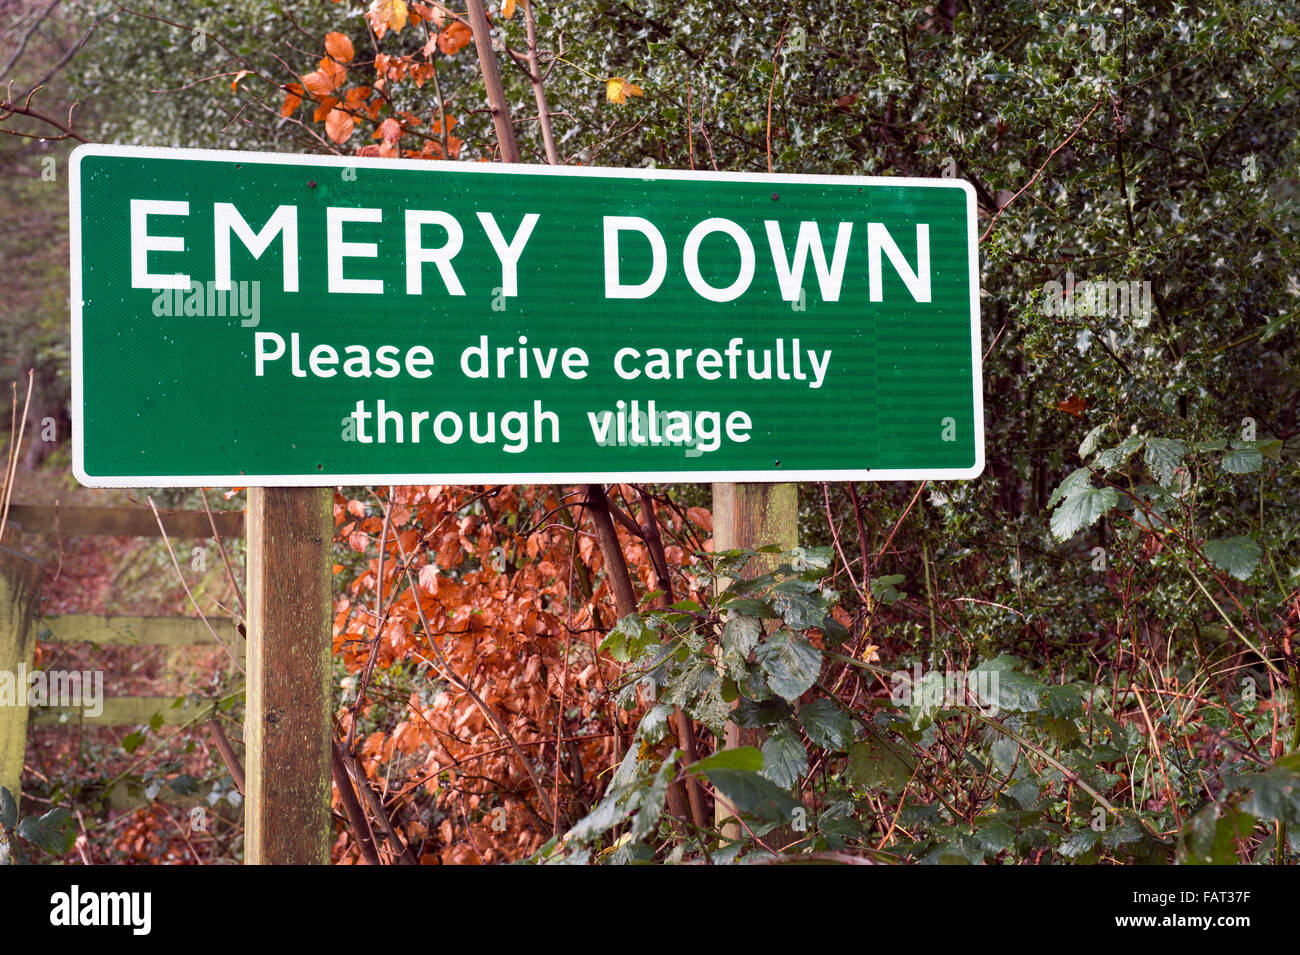 Emery Down village name sign, Emery Down, New Forest, Hampshire, England, UK. Stock Photo